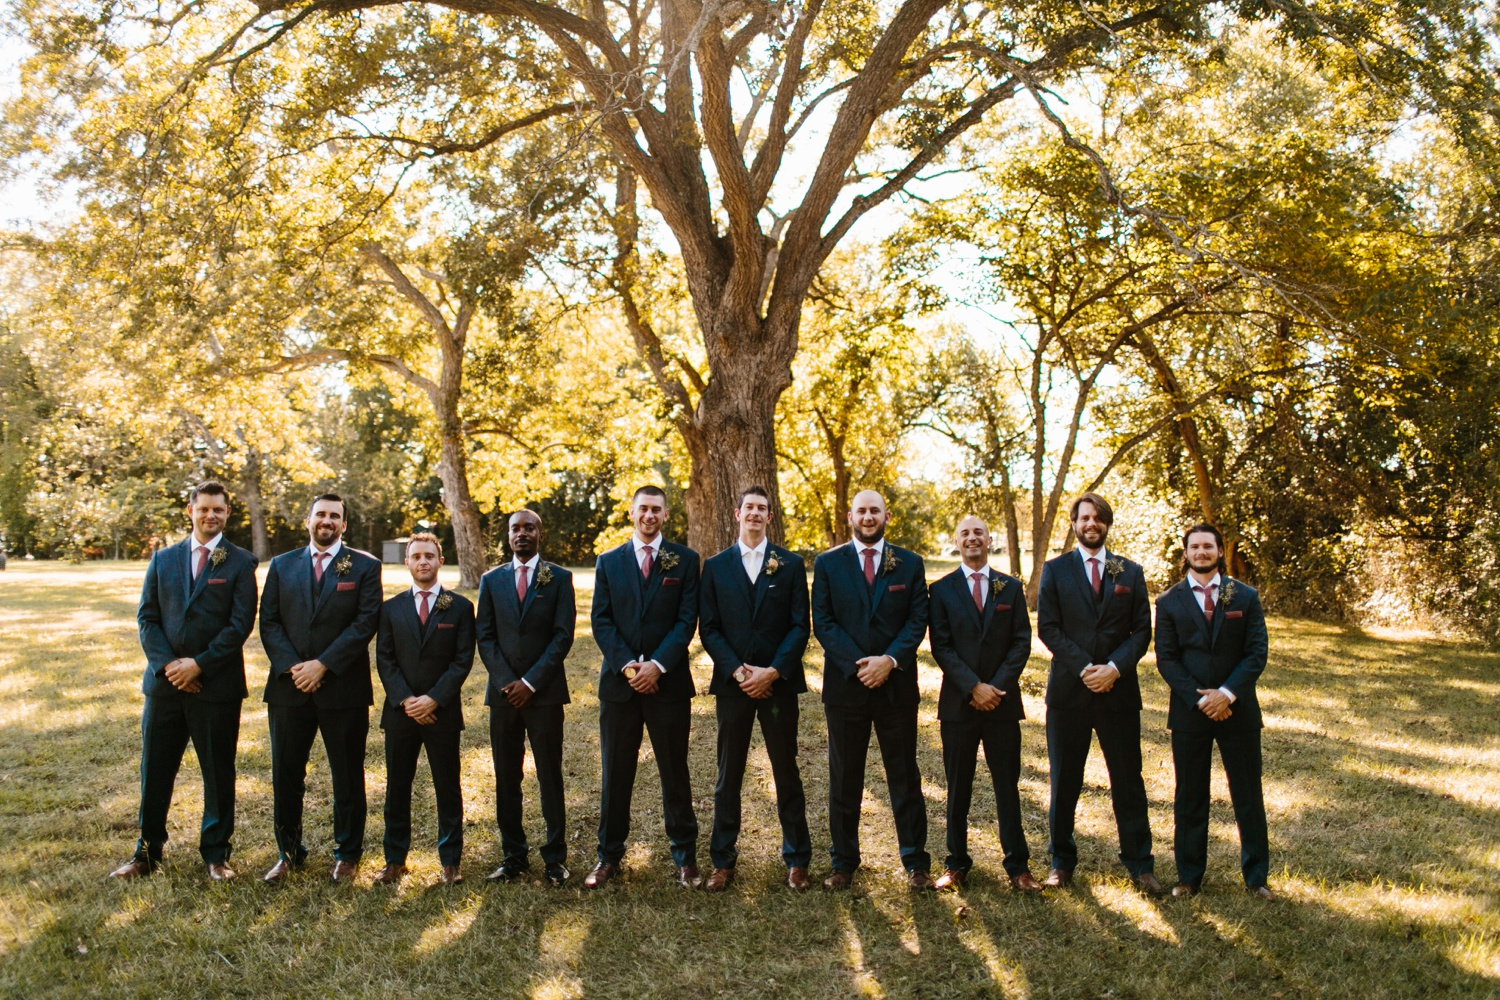 Erica + Henry | a bohemian inspired wedding at Chandlers Gardens in Salina, TX by North Texas Wedding Photographer Rachel Meagan Photography 043